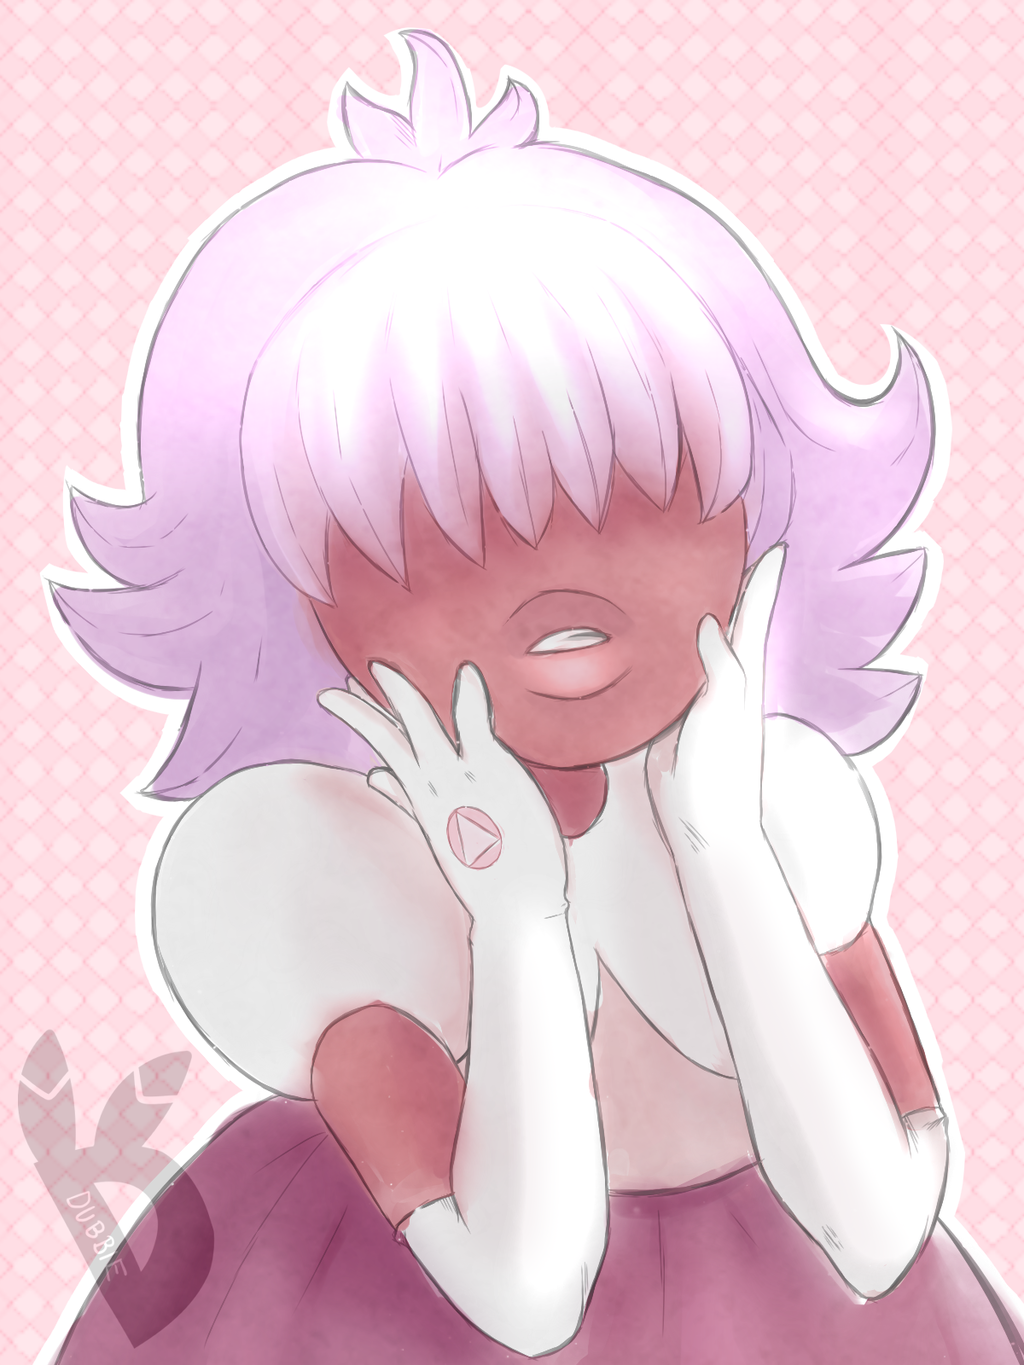 Most recent image: Padparadscha